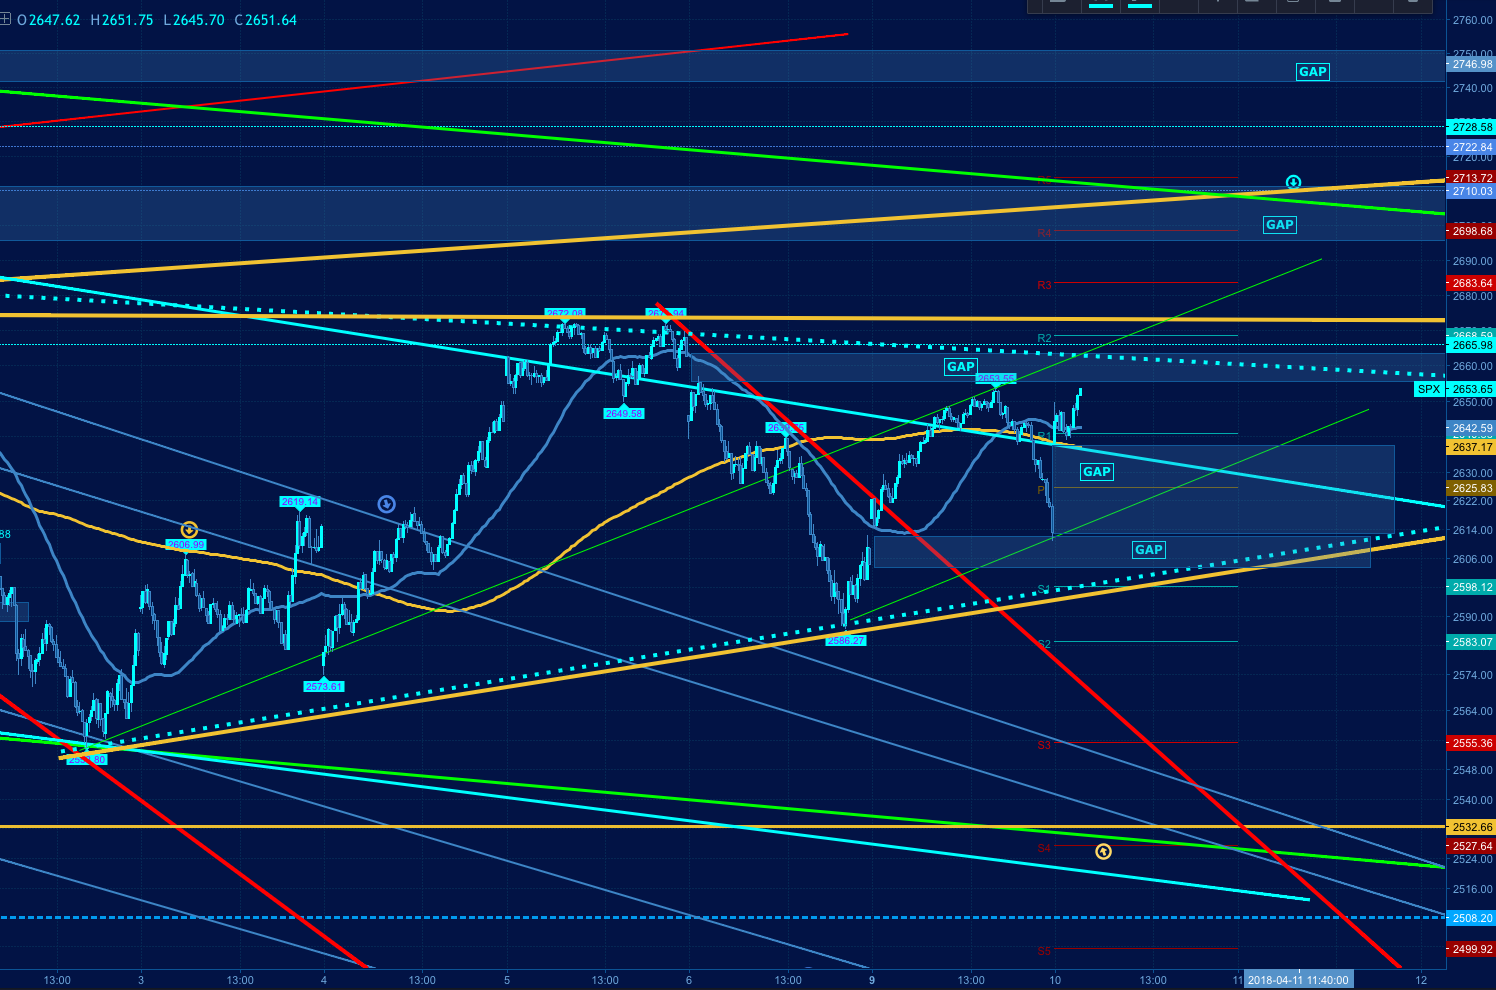 Screen Shot 2018-04-10 at 7.27.49 AM.png